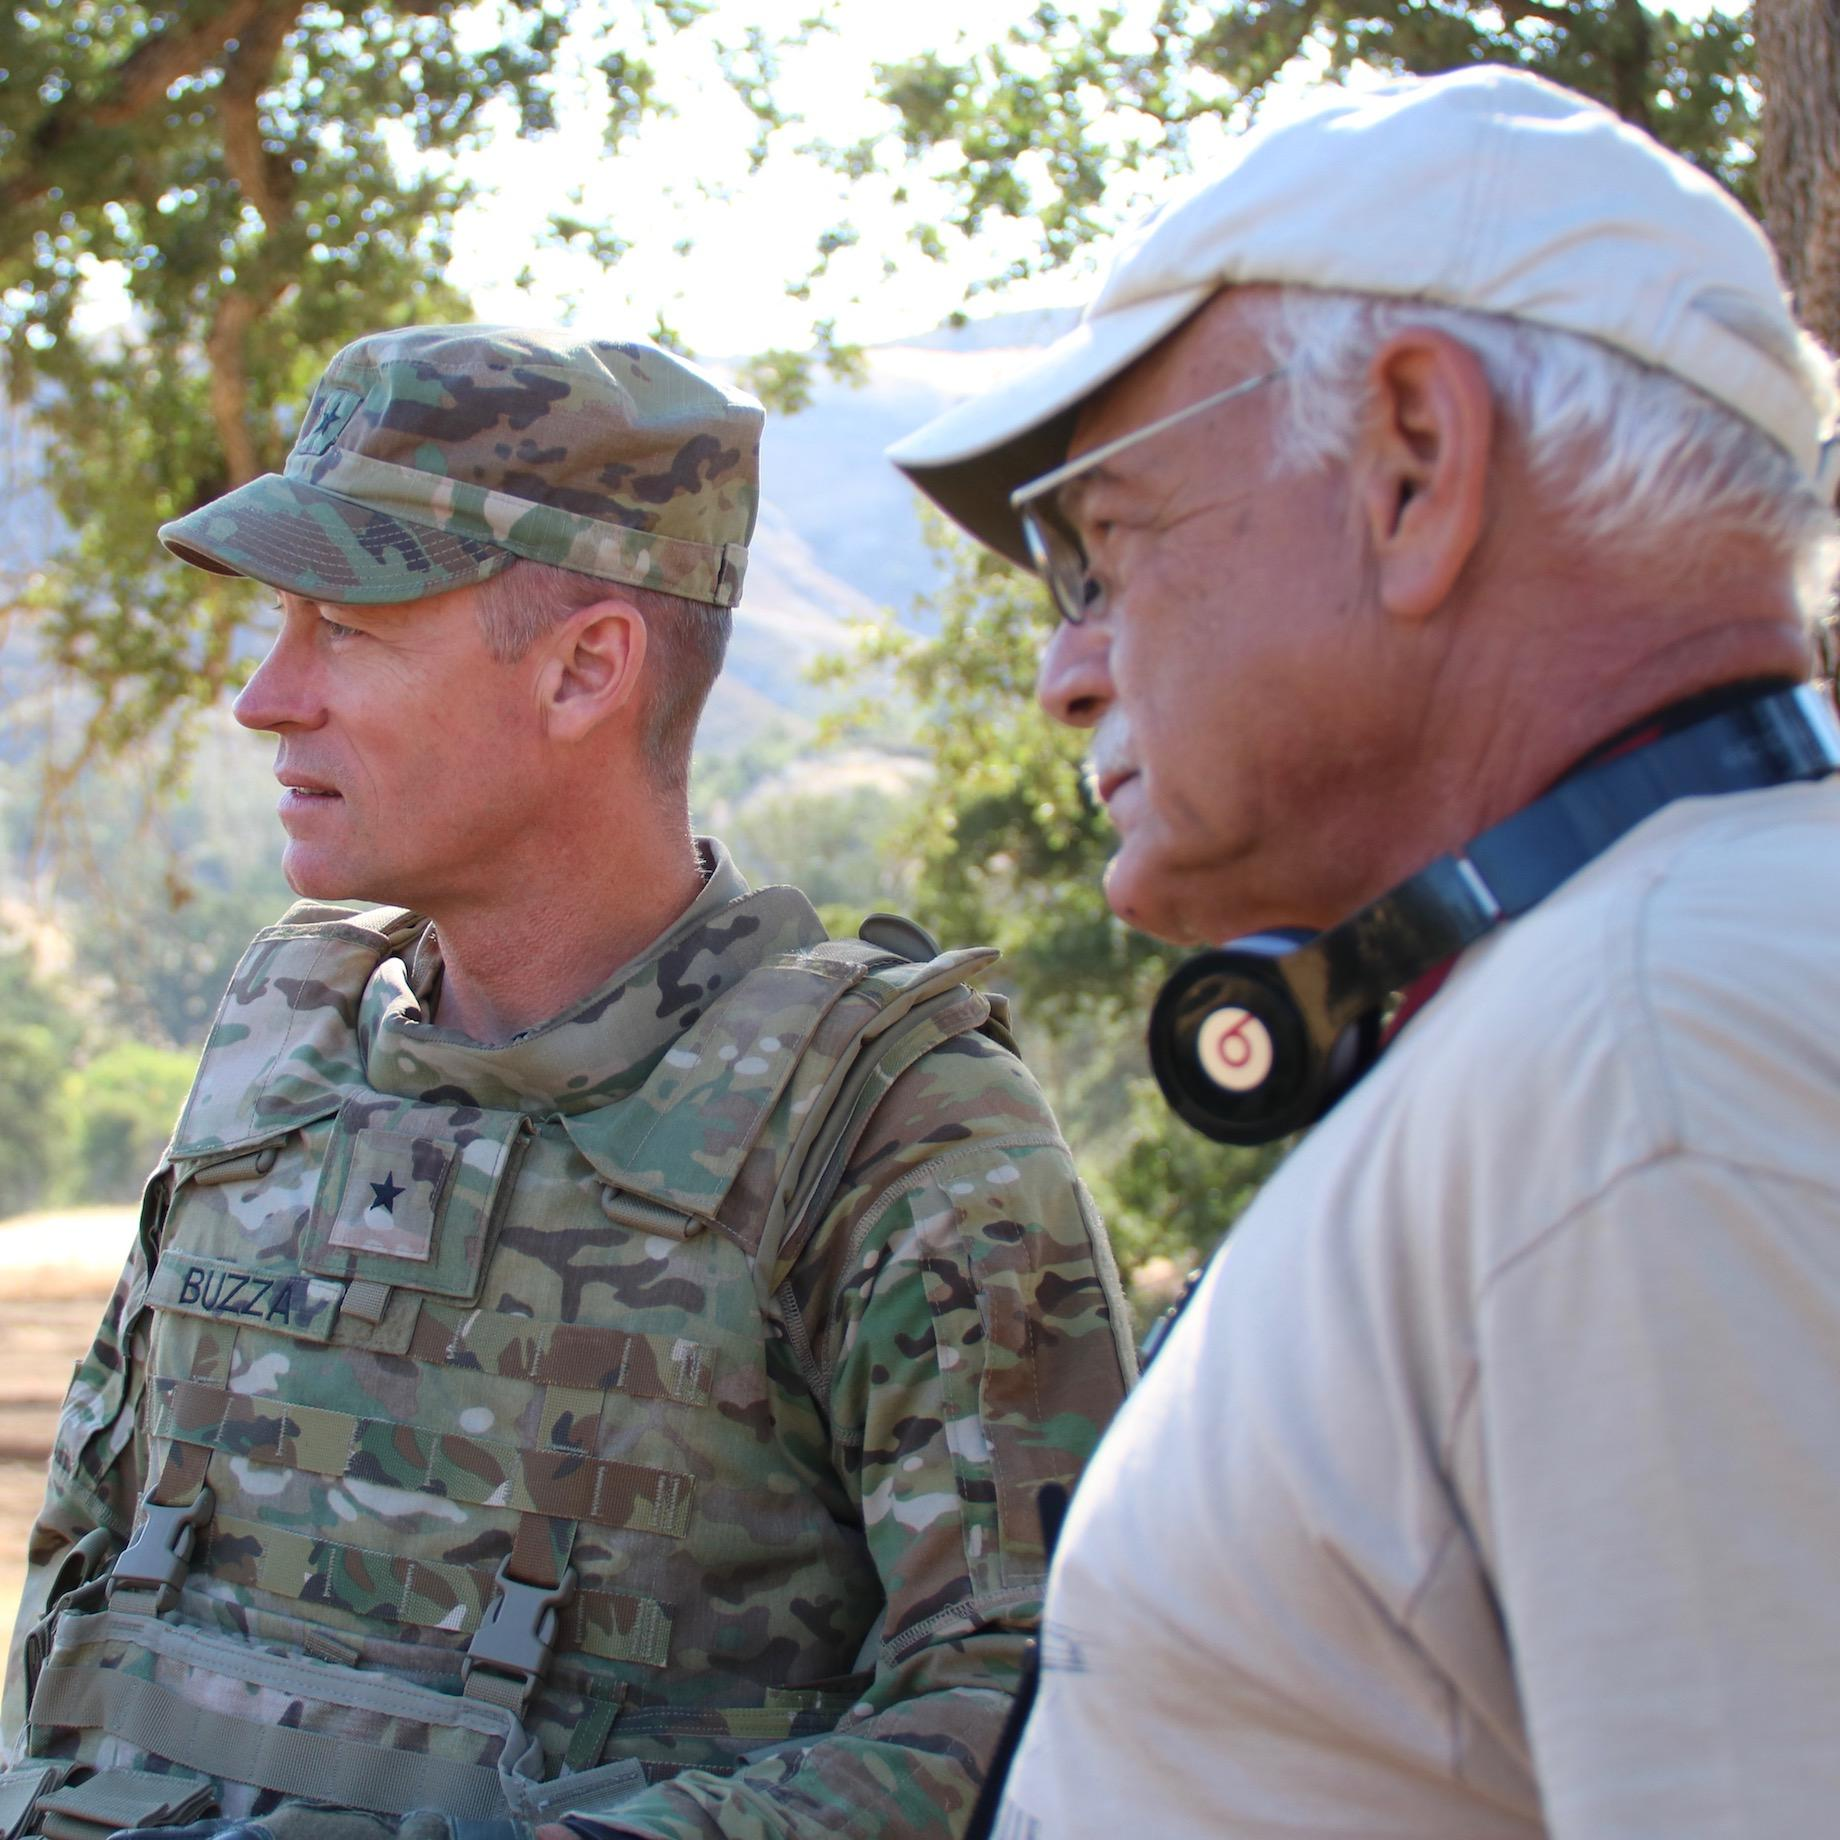 Brigadier General Shane Buzza Commanding Of The 91st Training Division At Fort Hunter Liggett And Correspondent Tom Wilmer Right Observe Army